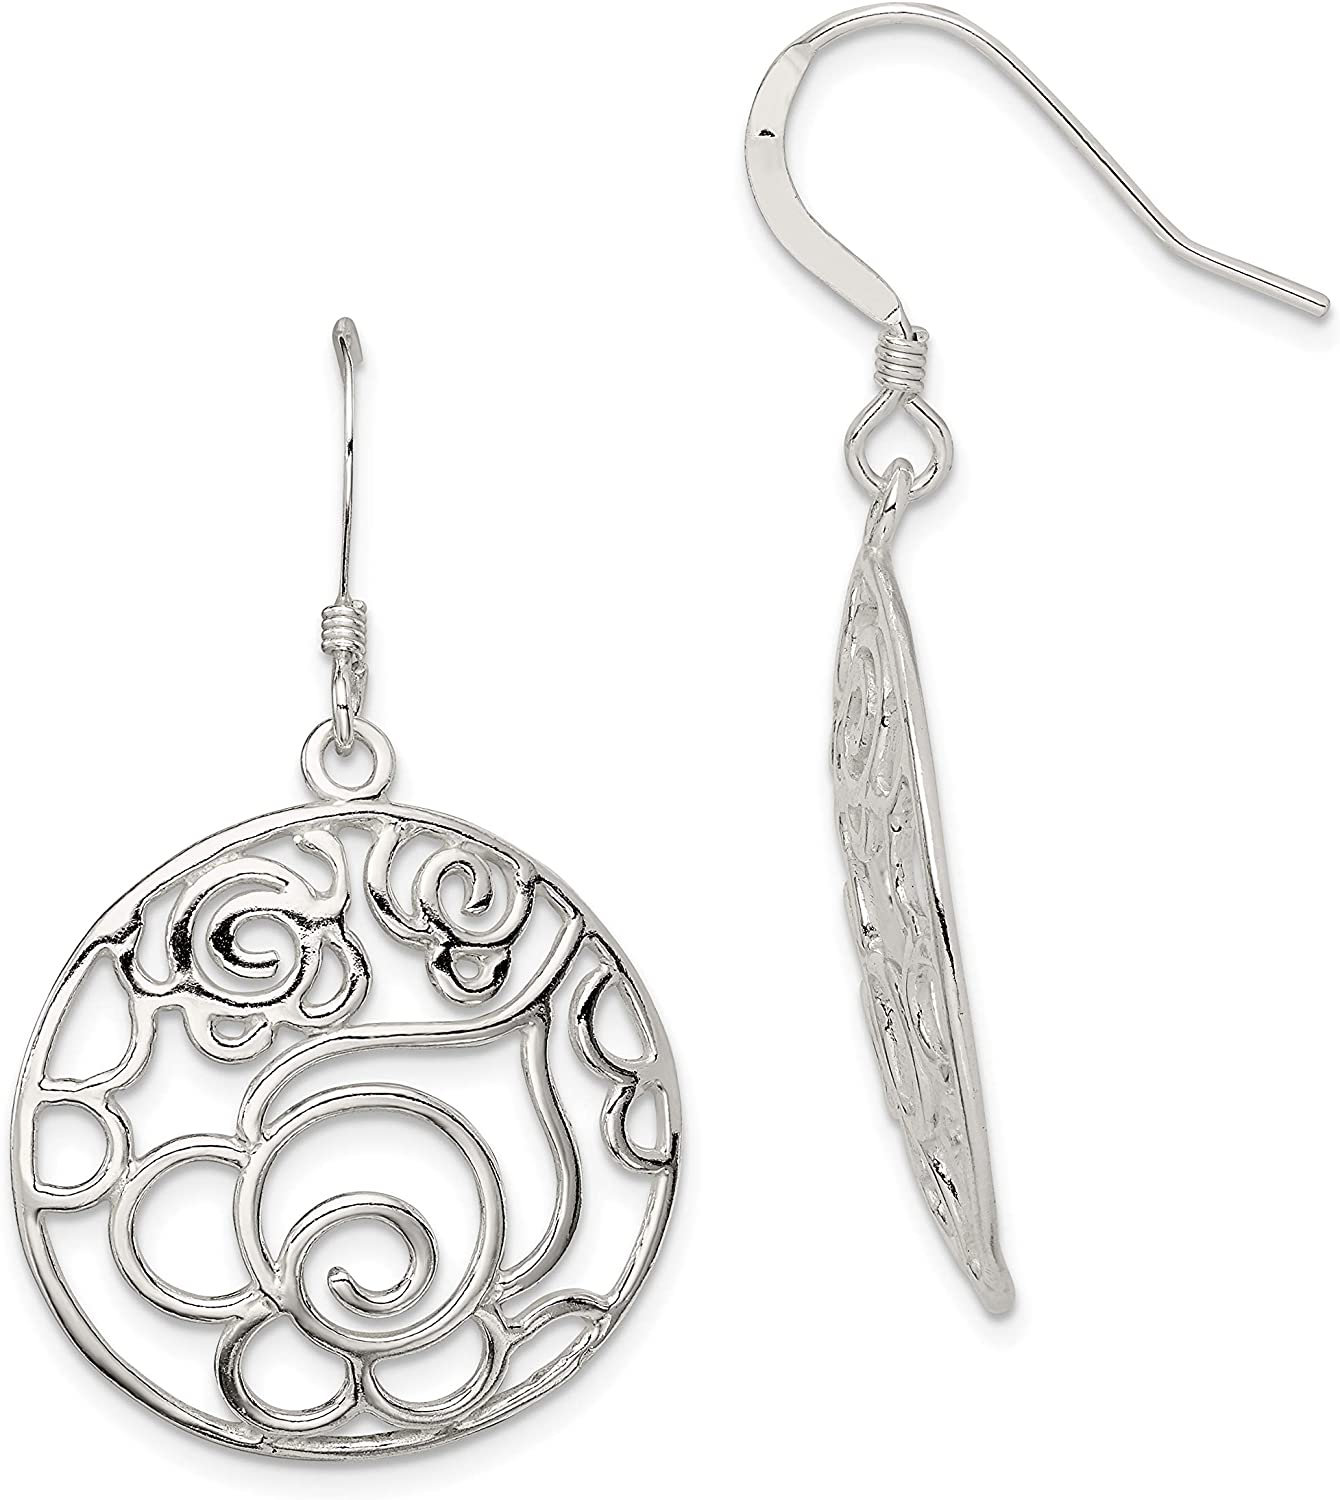 Sterling Silver Polished Round Fancy Dangle Earrings and a pair of 4mm CZ Stud Earrings